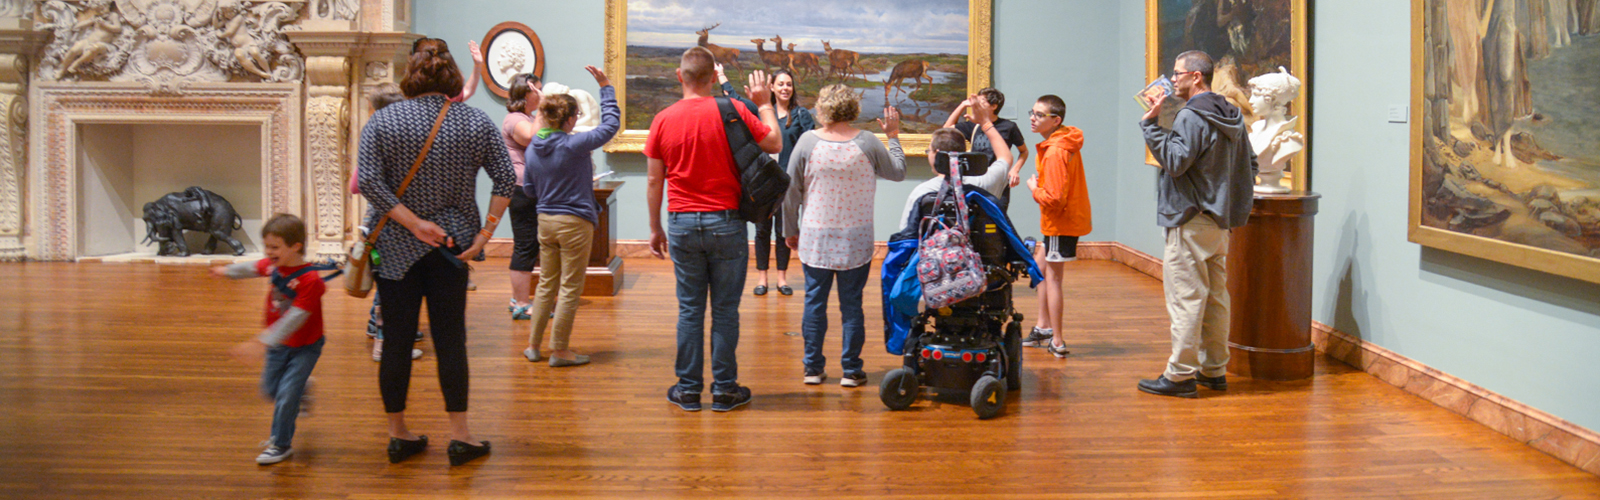 Families from Easter Seals at The Ringling&apos;s Where Everyone Belongs (WEB) program. <span class=&apos;image-credits&apos;>Daniel Perales</span>